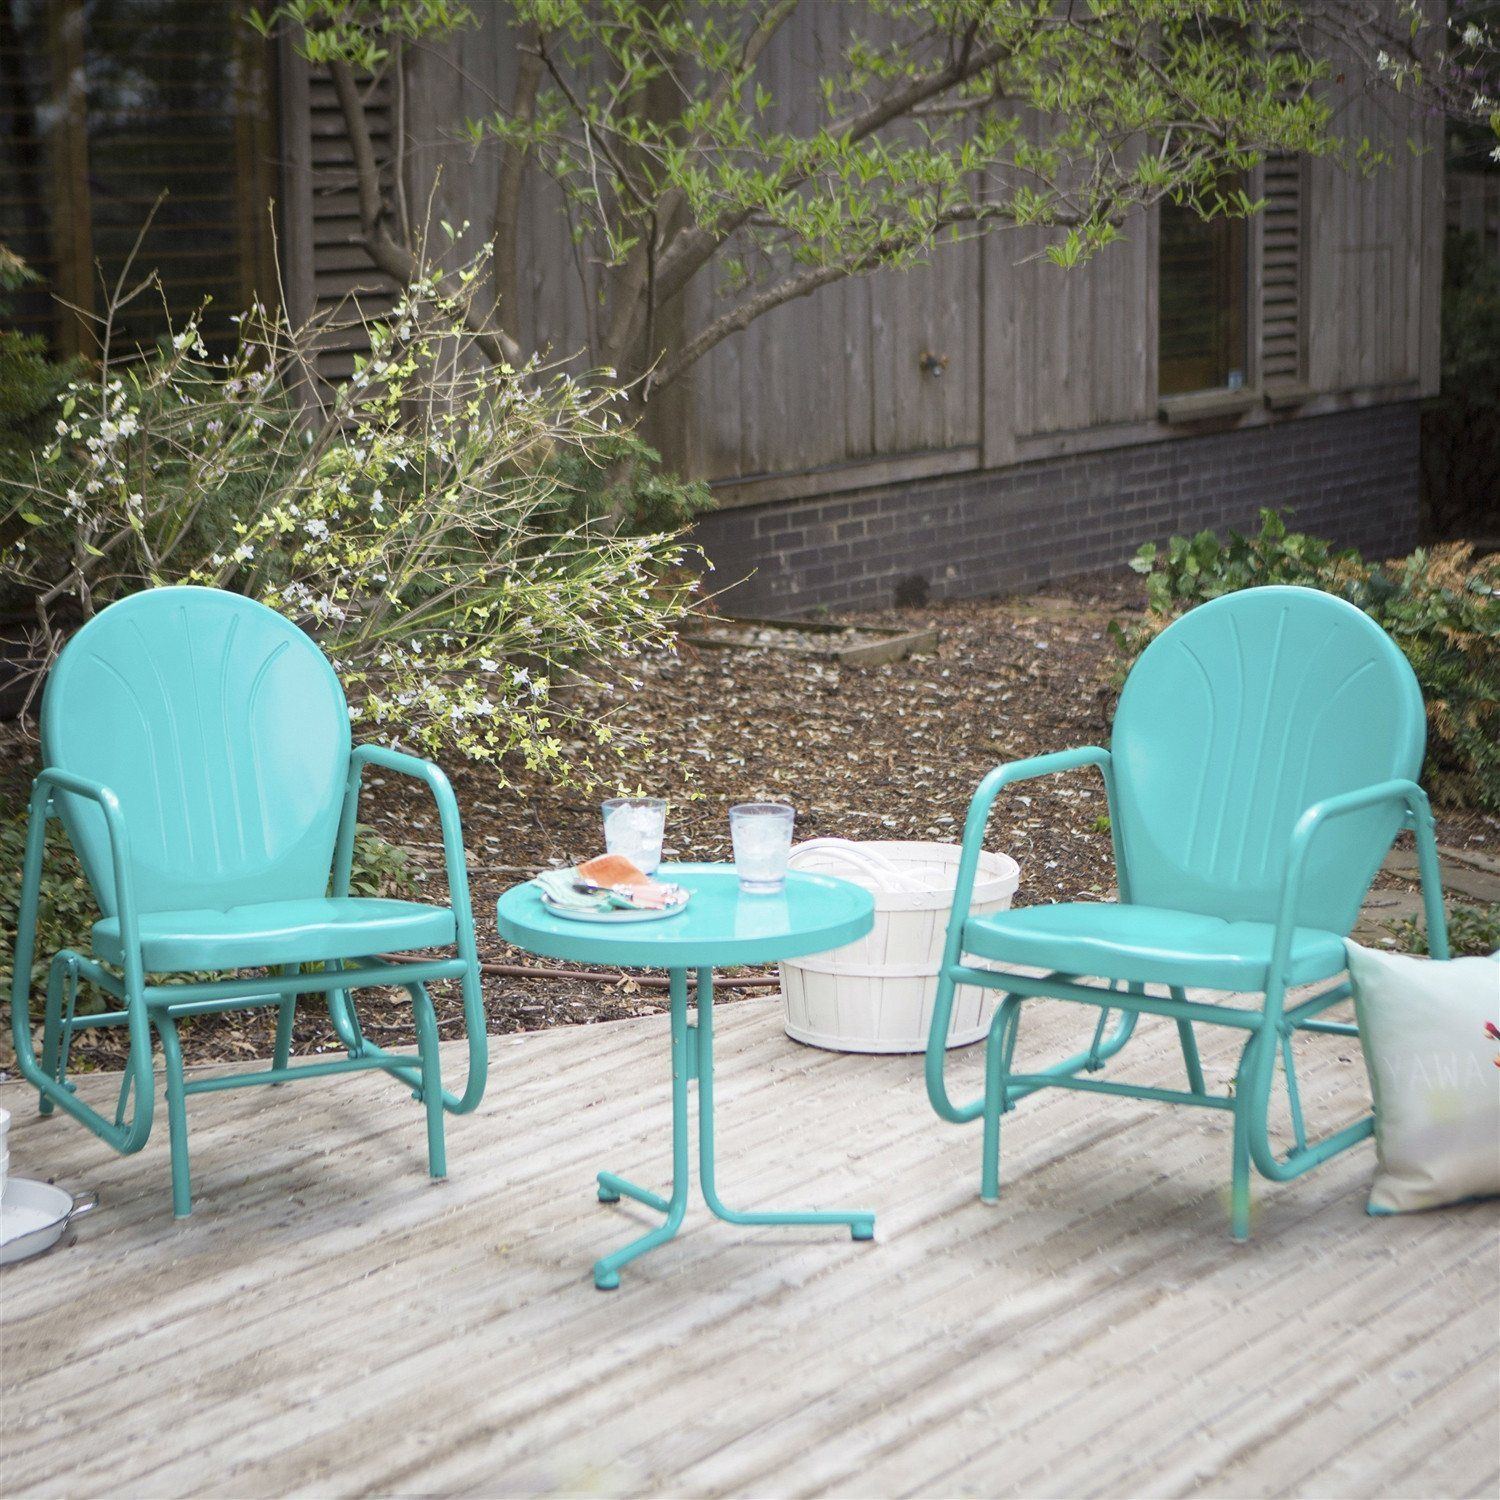 Turquoise Patio Chairs Metal Glider Chair Outdoor 3 Piece Retro Blue Furniture This Set With Side Table Is Durable Adorable And Oh So Fun To Sit In